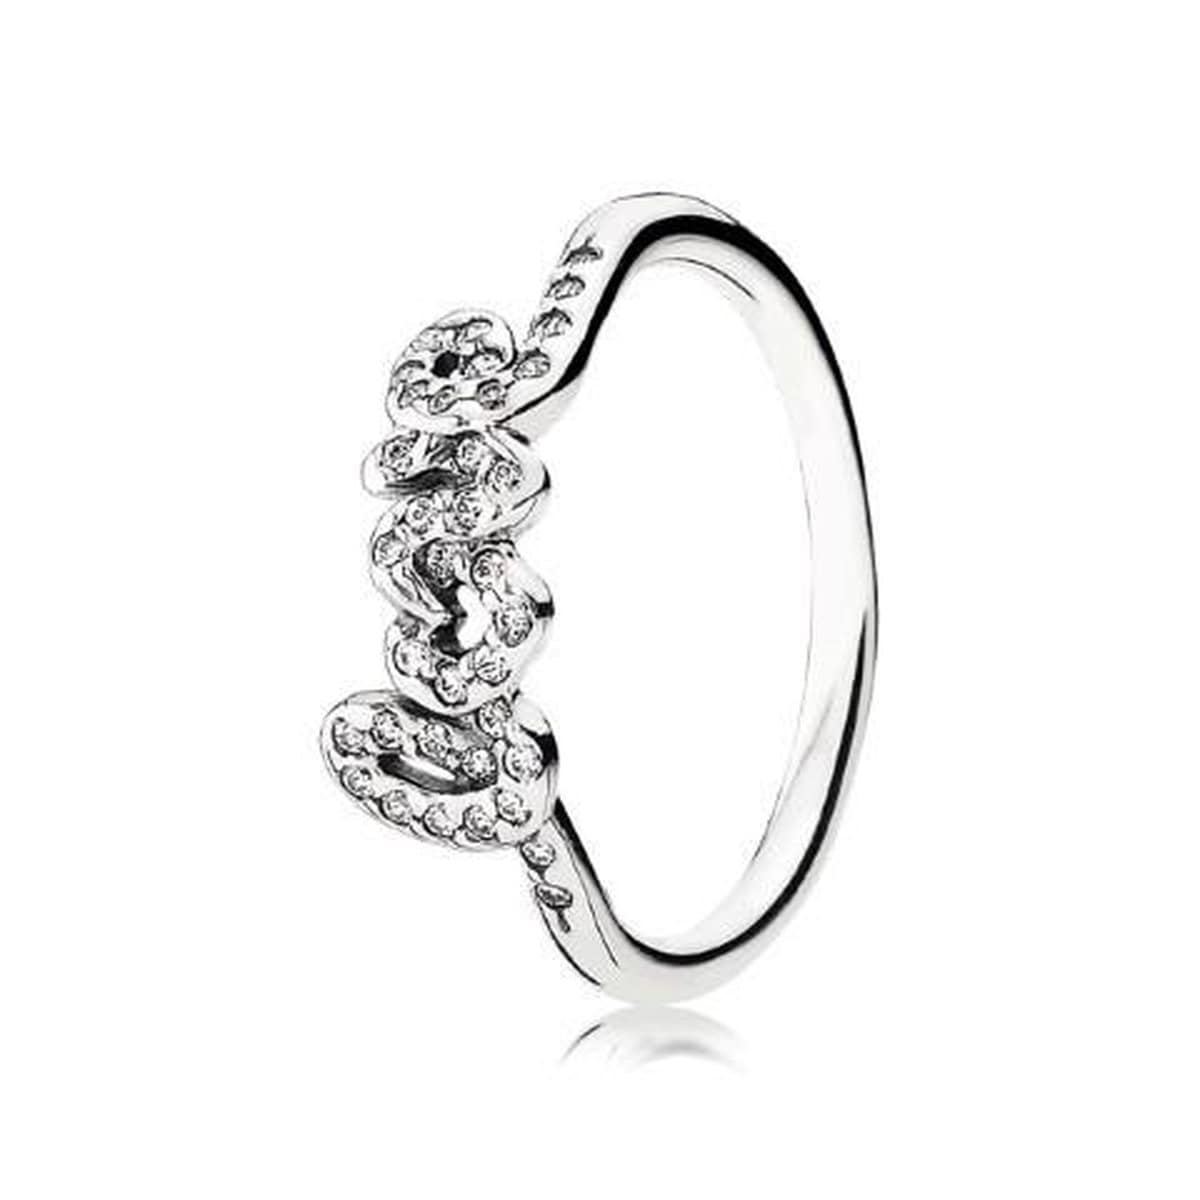 Signature of Love Clear Cubic Zirconia Ring - 190928CZ-Pandora-Renee Taylor Gallery